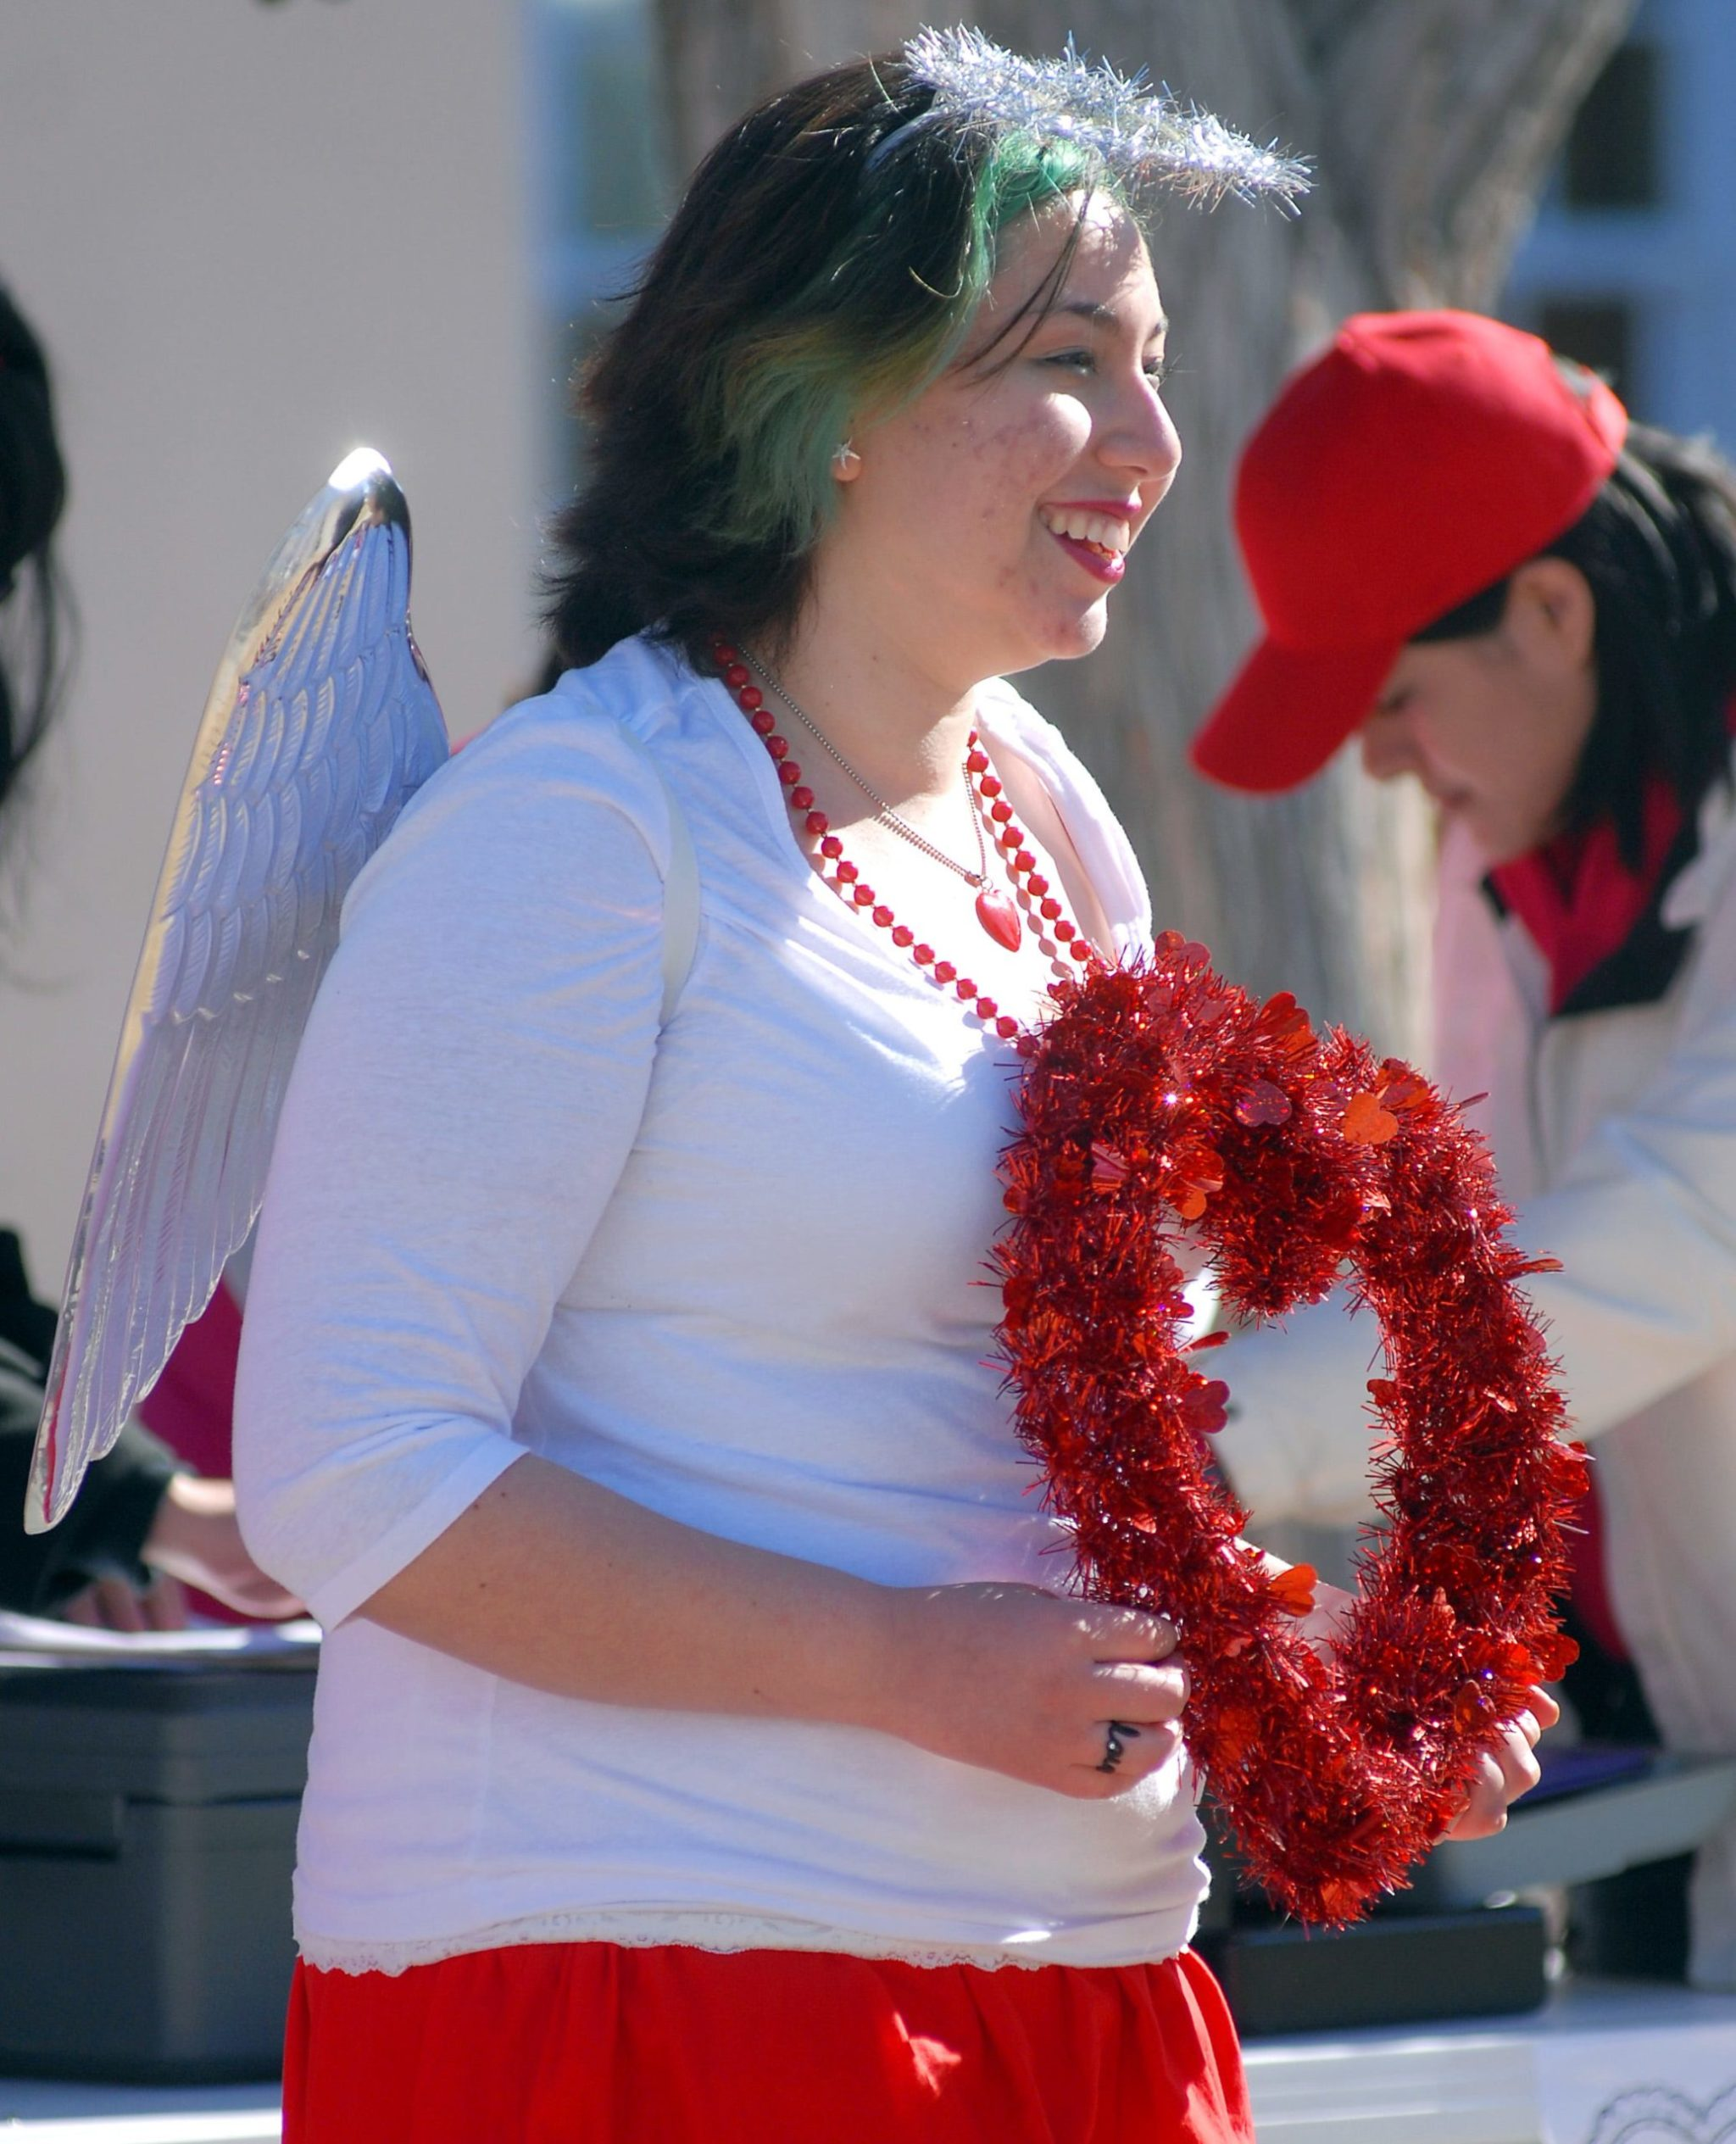 In this file photo, Erica Valdez, of Las Cruces, dresses as a Cupid the mascot for the Cupid's Chase 5K Run in the Mesilla Plaza on Saturday. (Photo: Robin Zielinski/Sun-News)